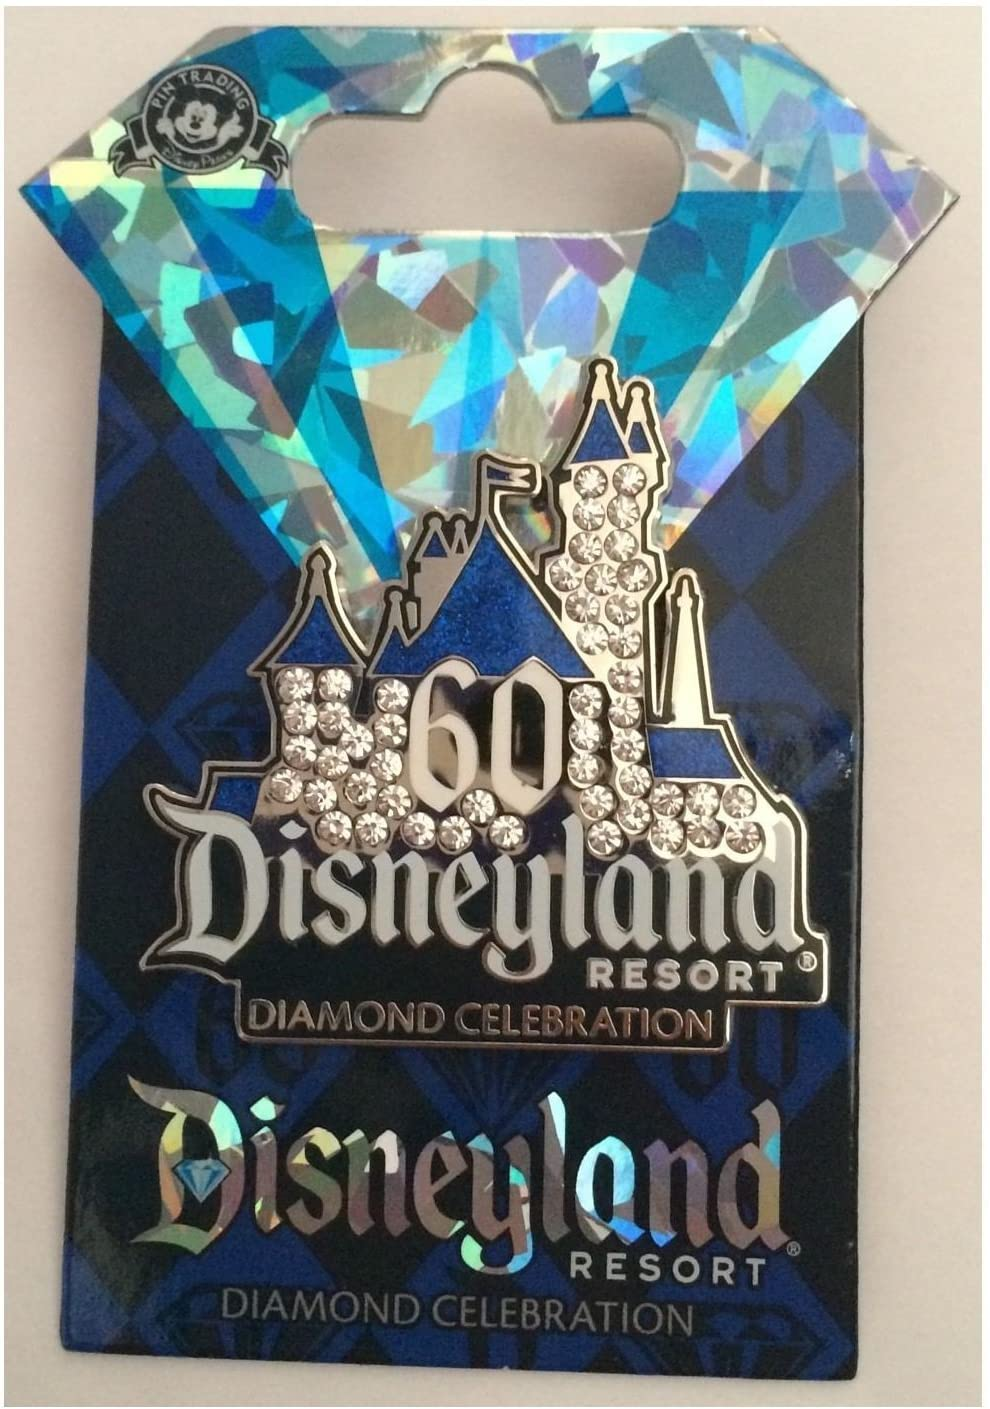 Outlet ☆ Free Shipping Disneyland 60th Anniversary Diamond Beauty Celebration Limited price Sleeping